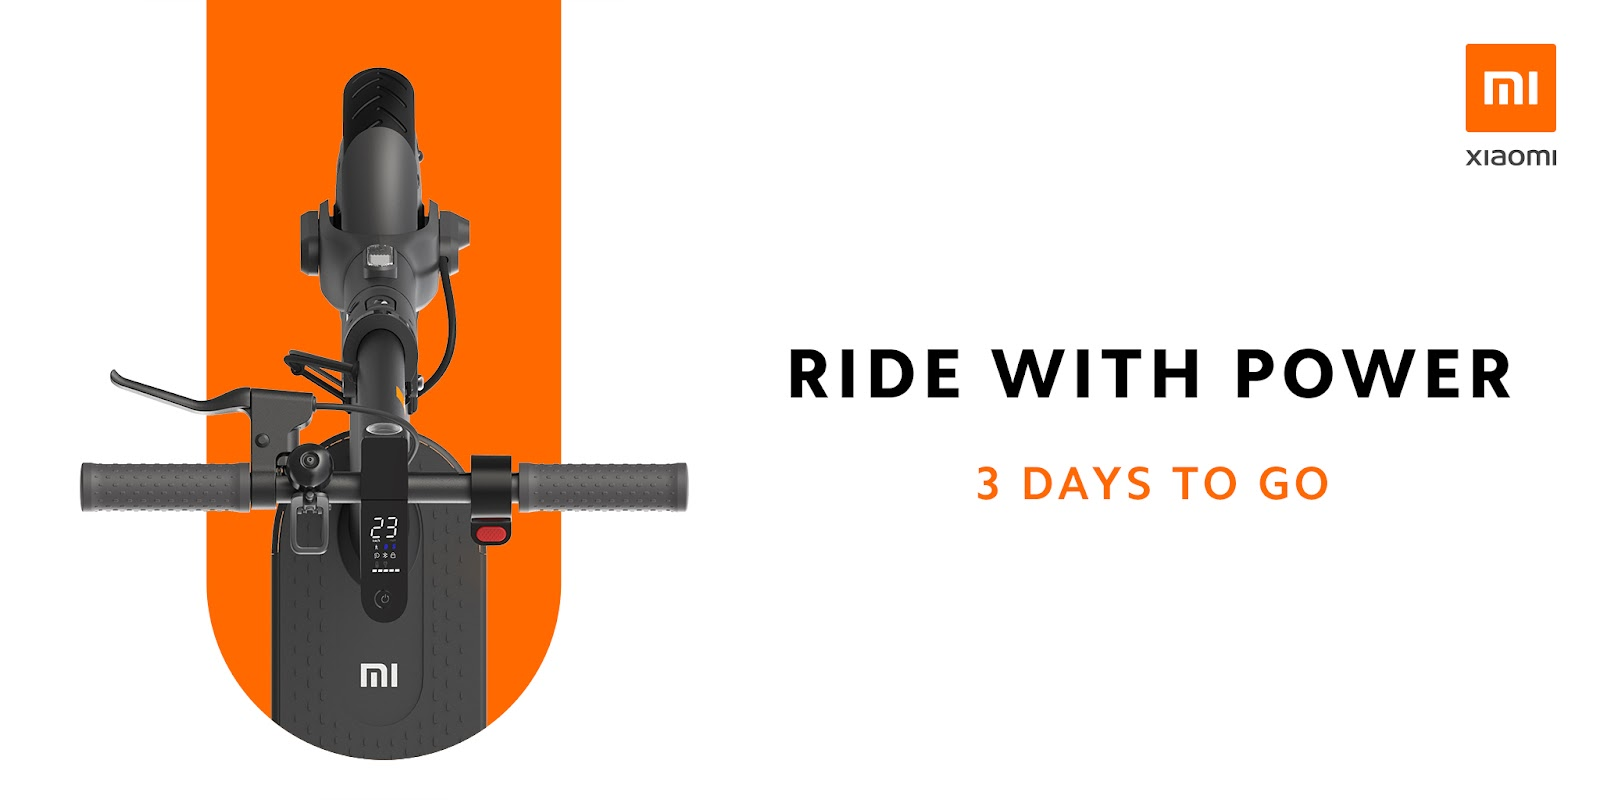 Get Ready To Meet The Newest Member From The Mi Electric Scooter Family!